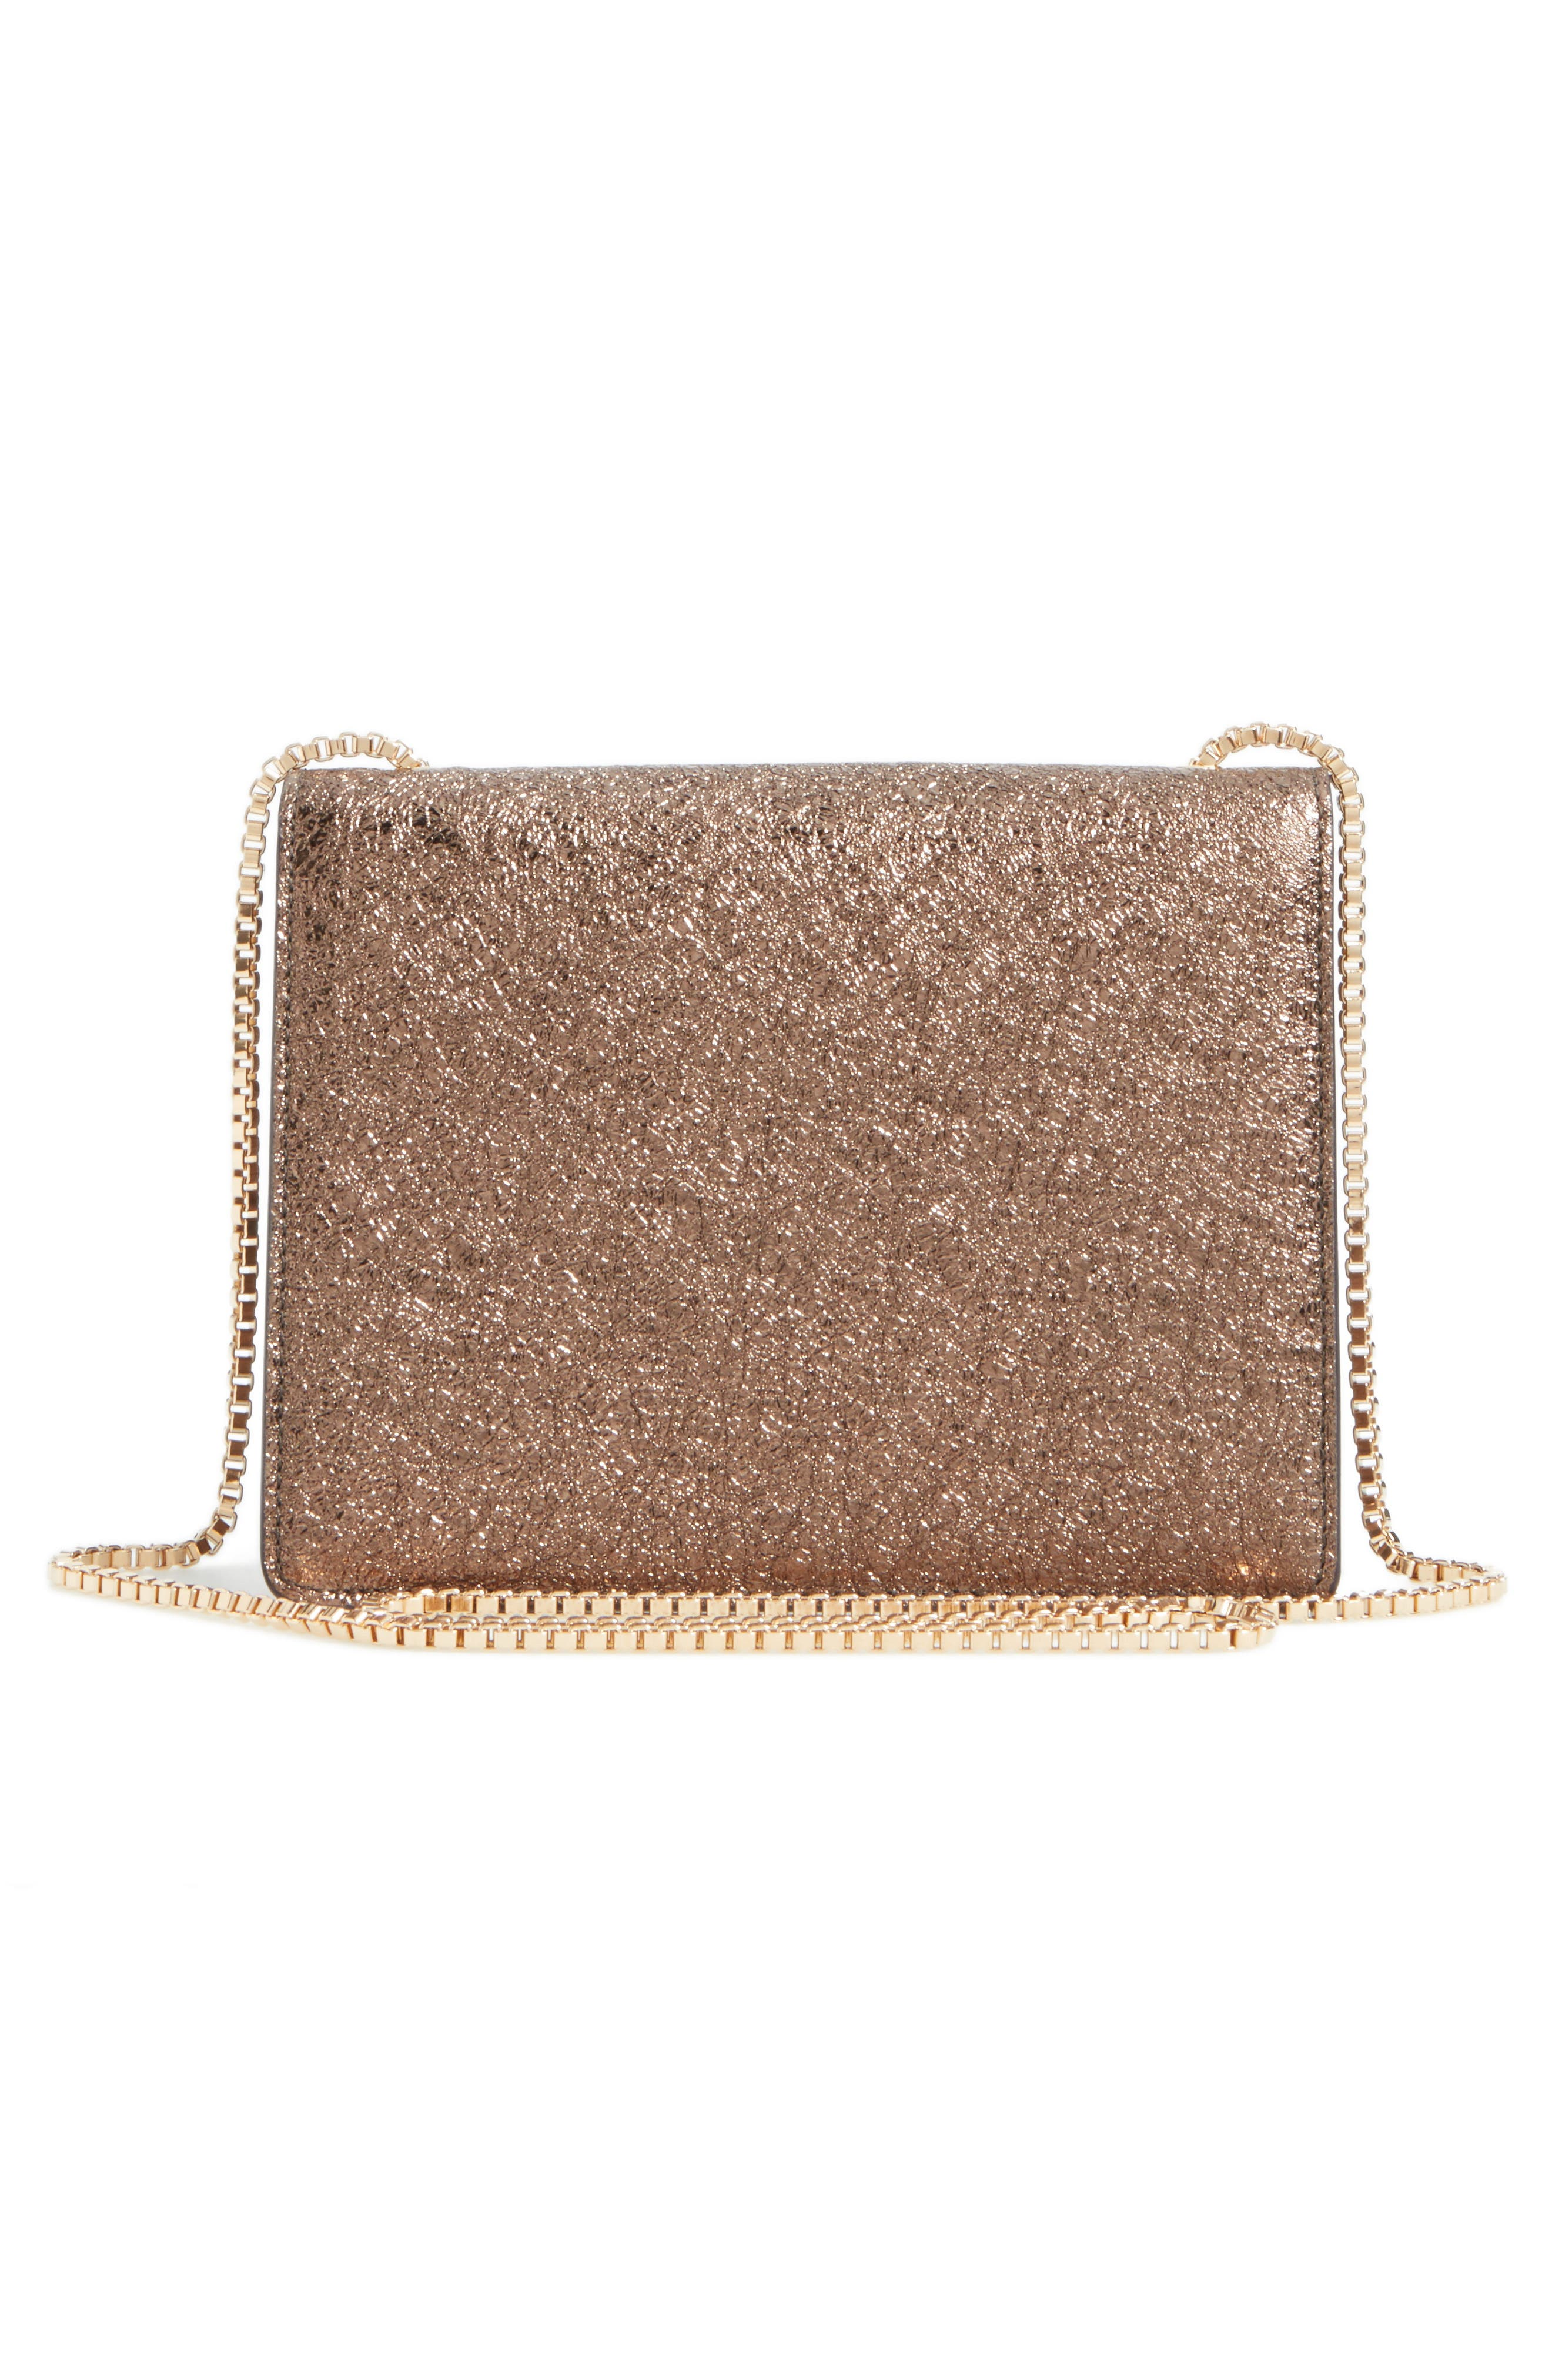 Small Metallic Leather Chain Shoulder Bag,                             Alternate thumbnail 3, color,